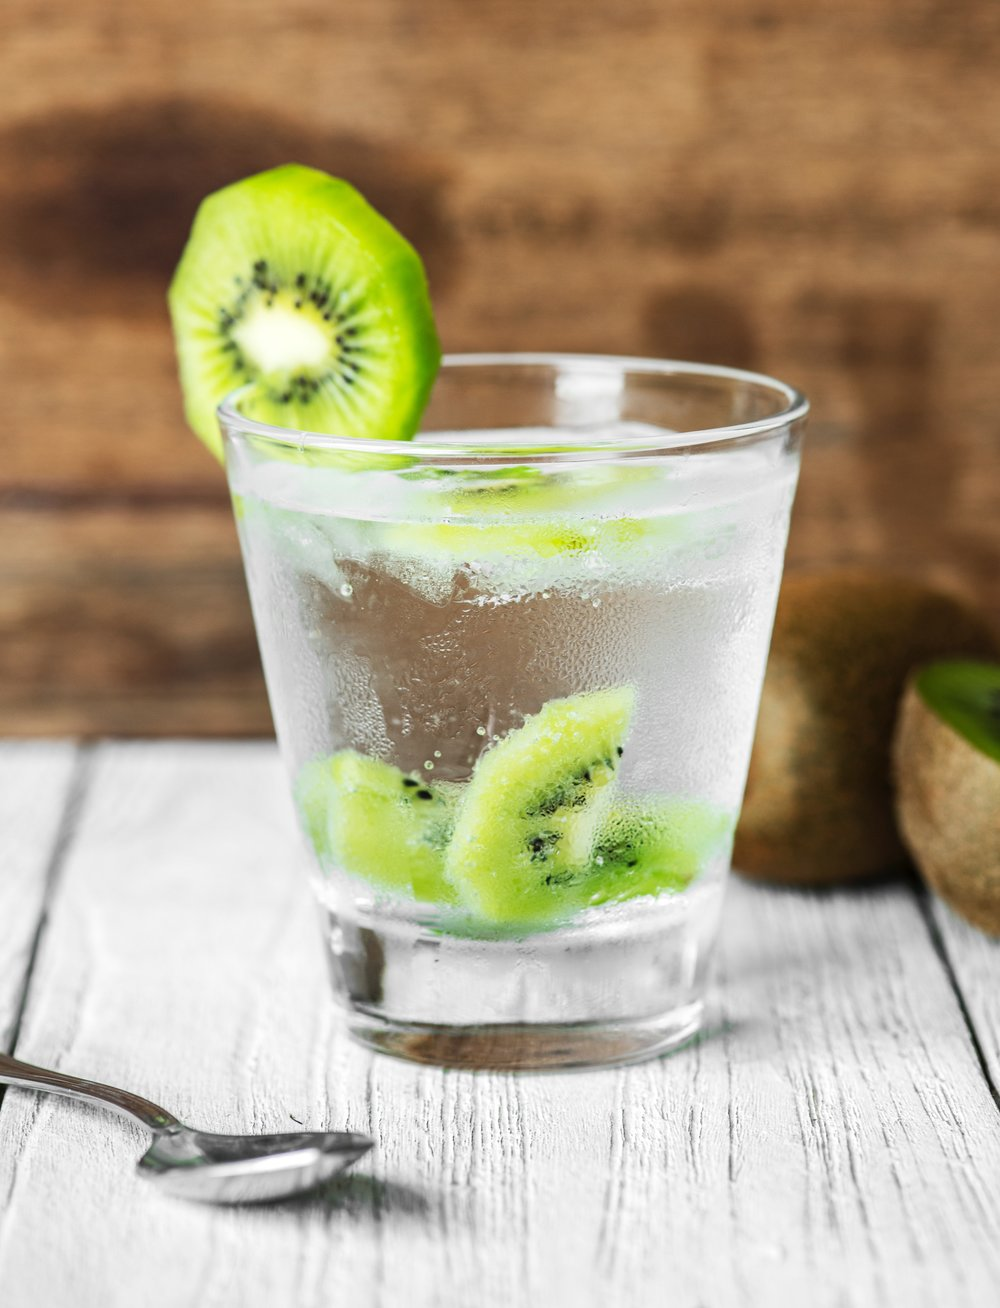 Try infusing water with kiwifruit for a refreshing burst of flavor. - You can eat the kiwifruit afterward!